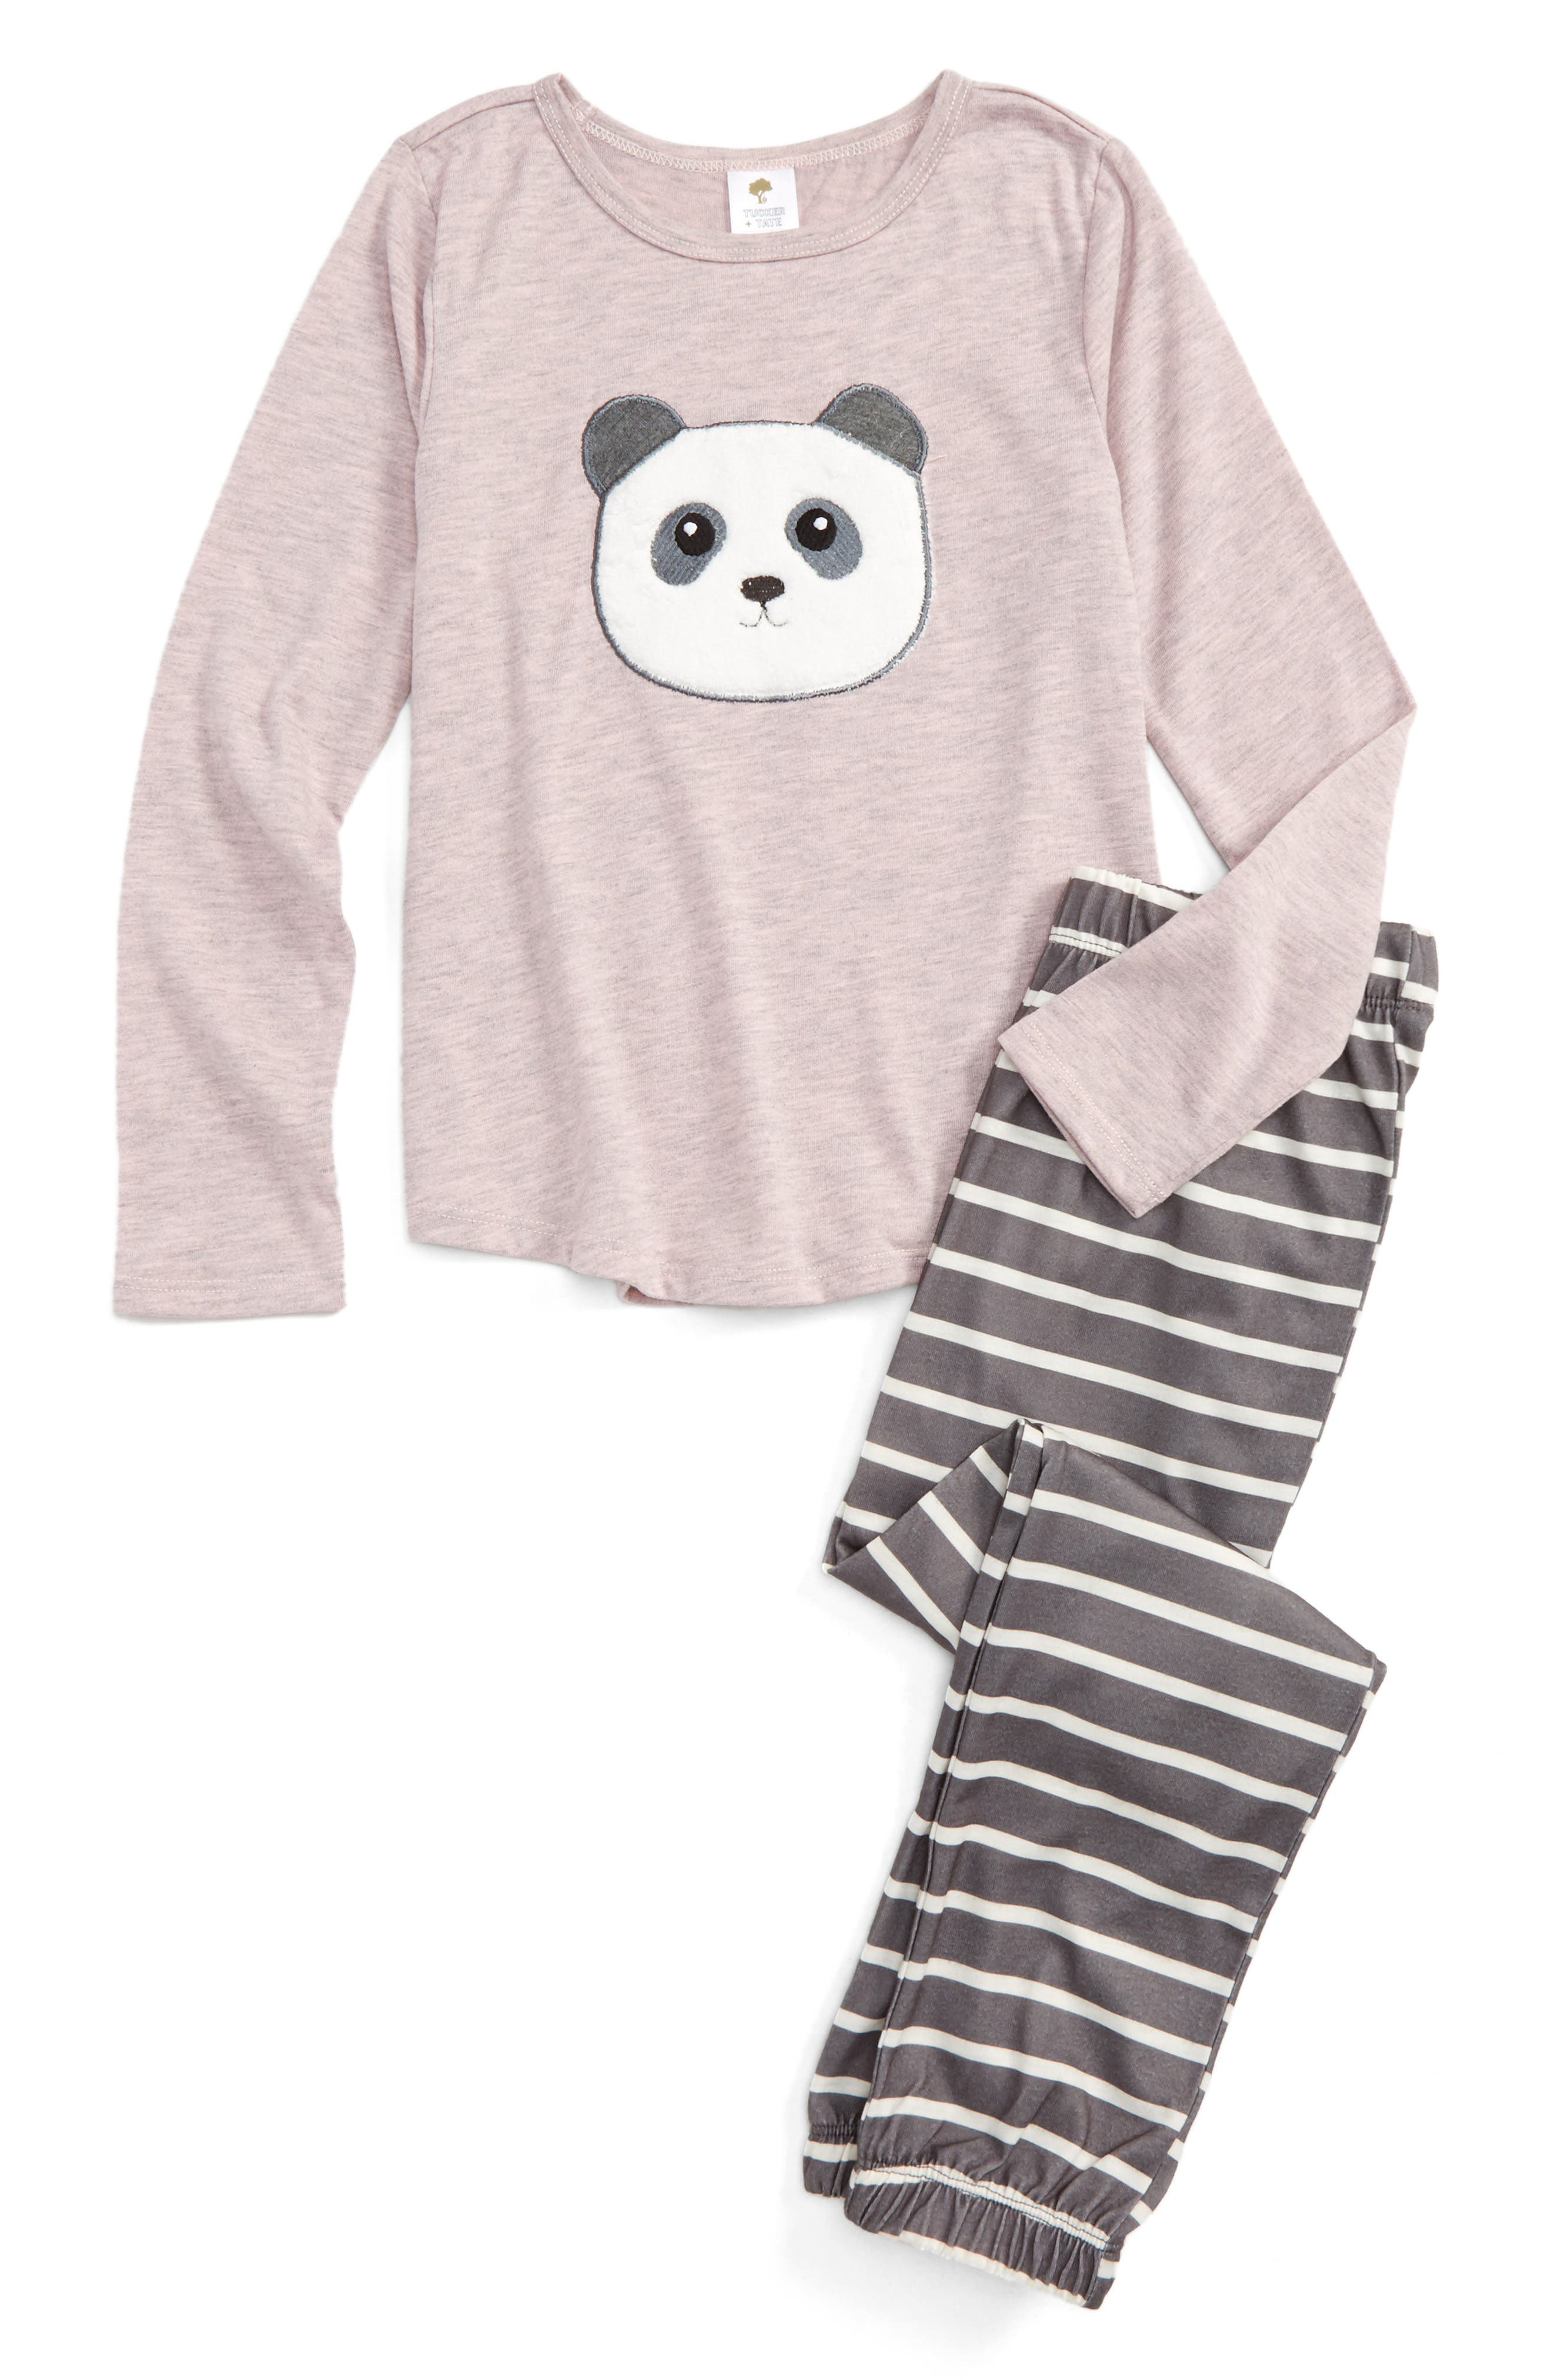 Appliqué Fitted Two-Piece Pajamas,                         Main,                         color, Pink Baby Heather Panda